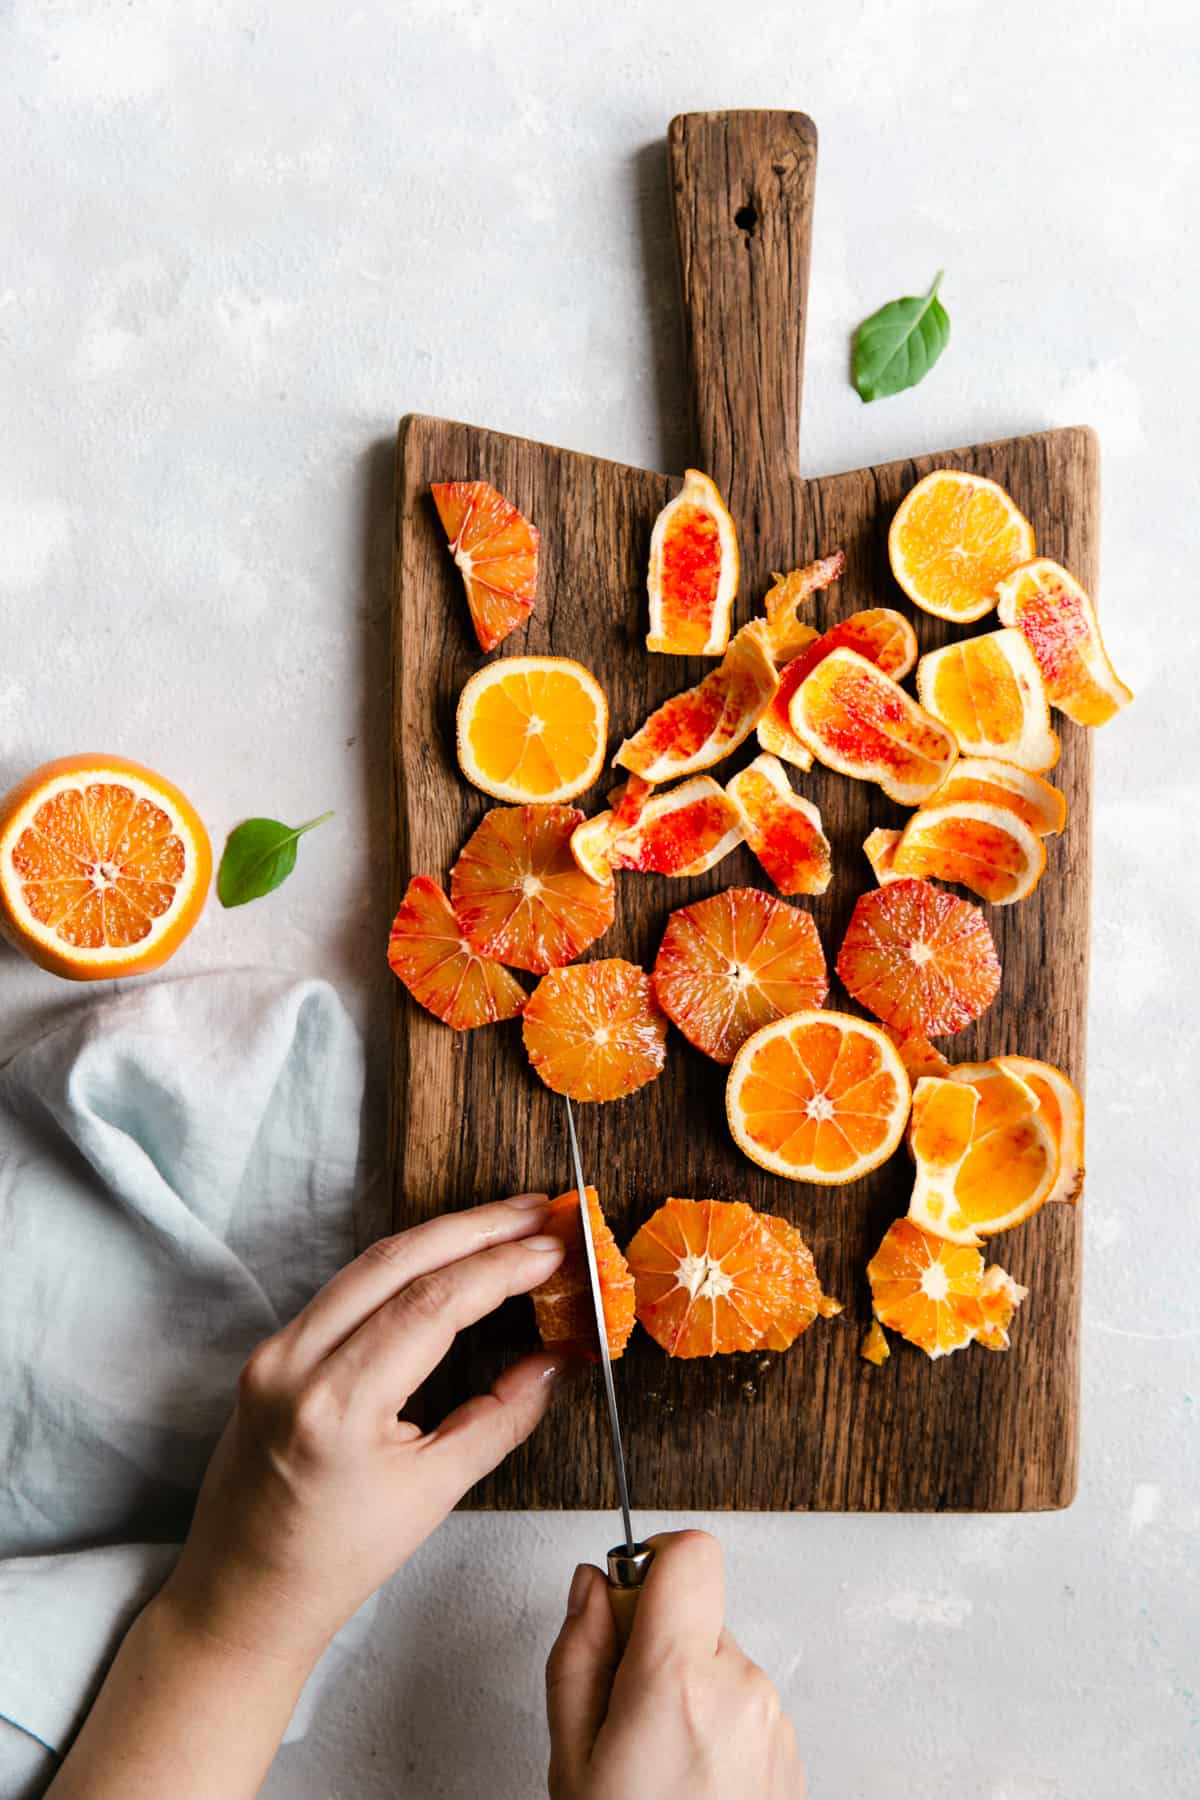 overhead shot of a person slicing a blood orange on a wooden chopping board